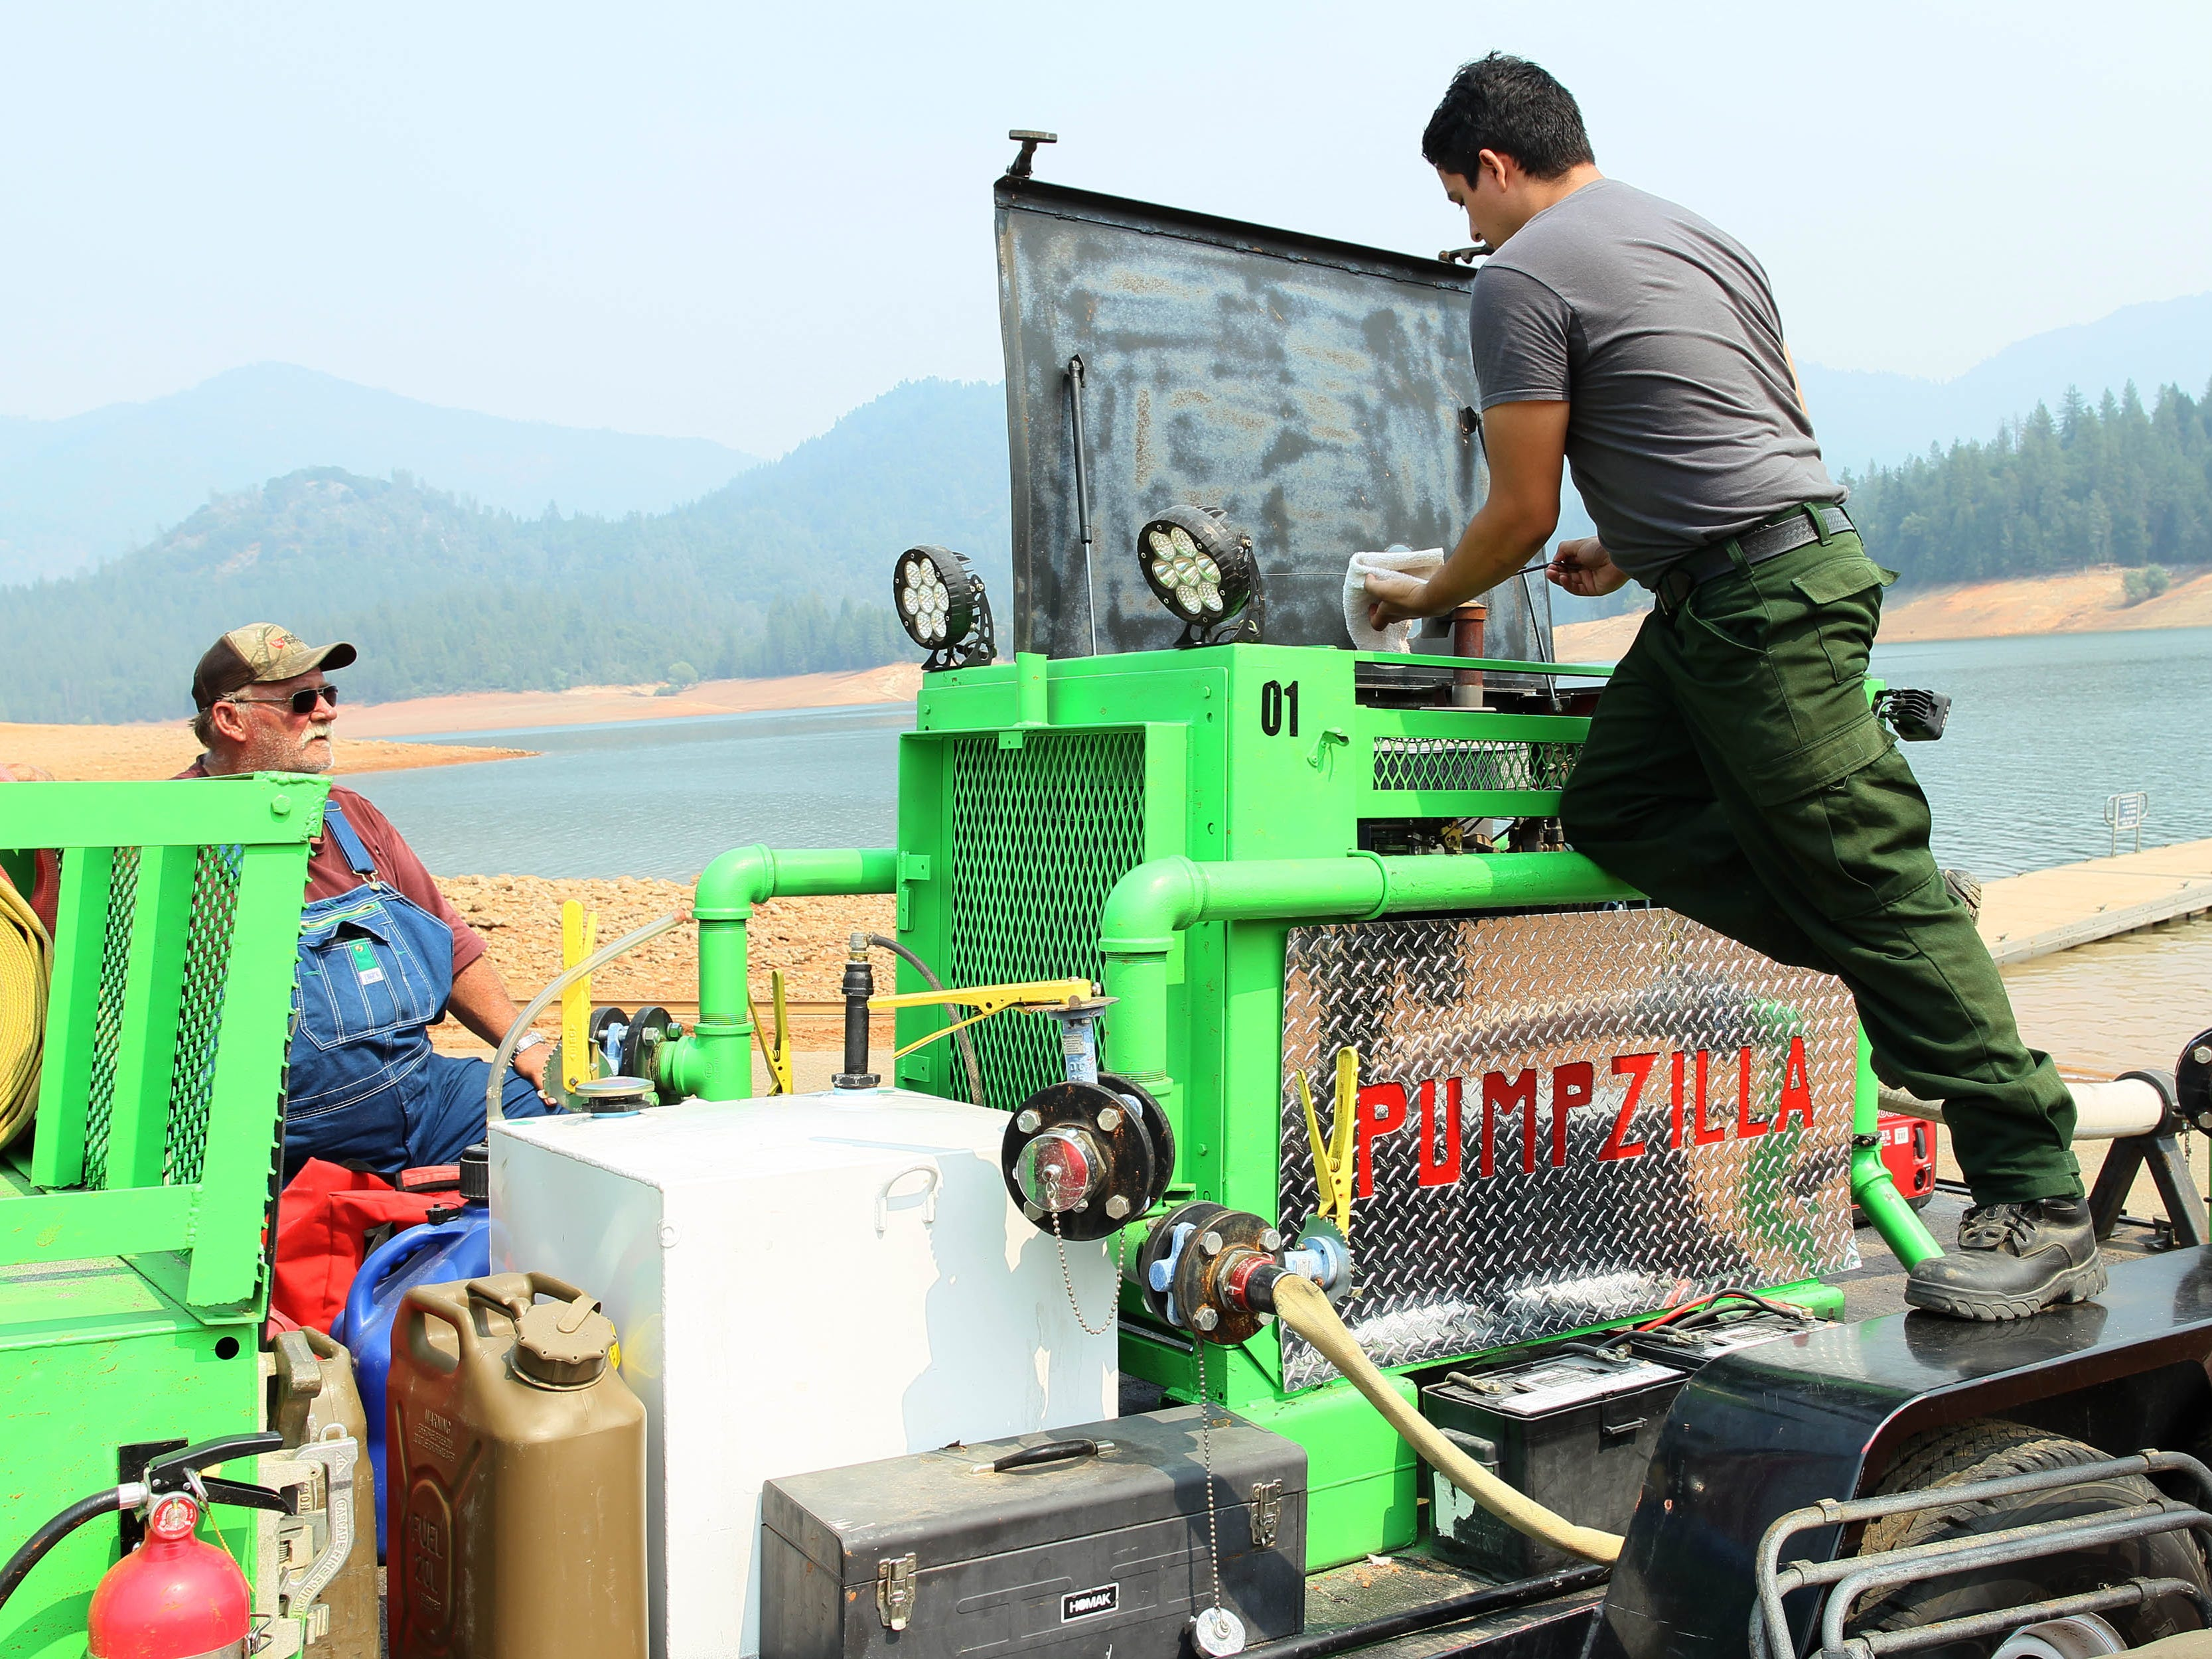 Jesse Lea, left, and Abel Pini, both are operators of the Pumpzilla Fire Support. They check the oil on the pump before refilling water for the tankers at Hirz Bay on Saturday, Aug. 18, 2018. (Special to the Record Searchlight/Hung T. Vu)